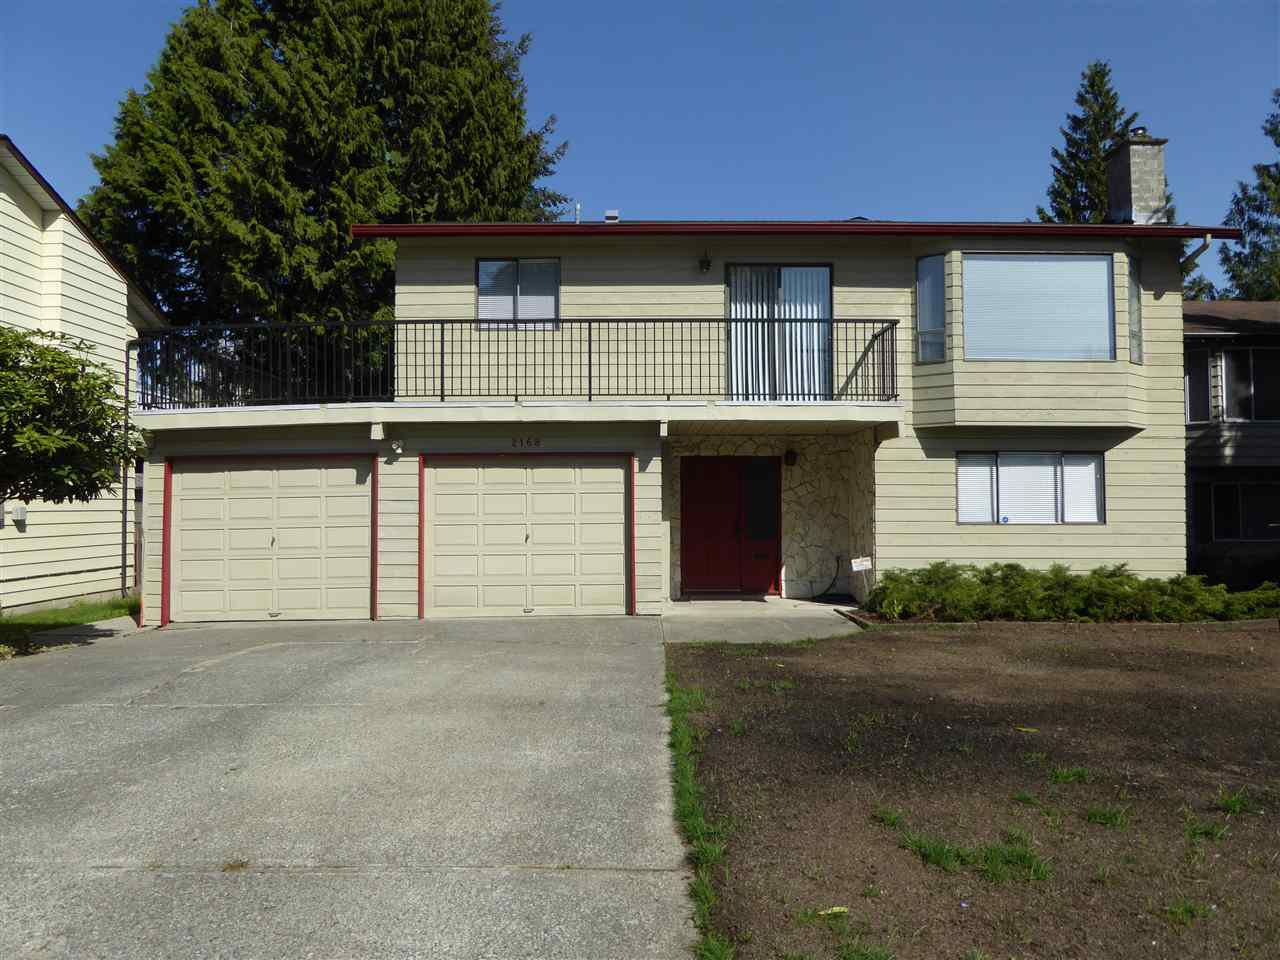 Main Photo: 2168 LAURIER Avenue in Port Coquitlam: Glenwood PQ House for sale : MLS®# R2261219